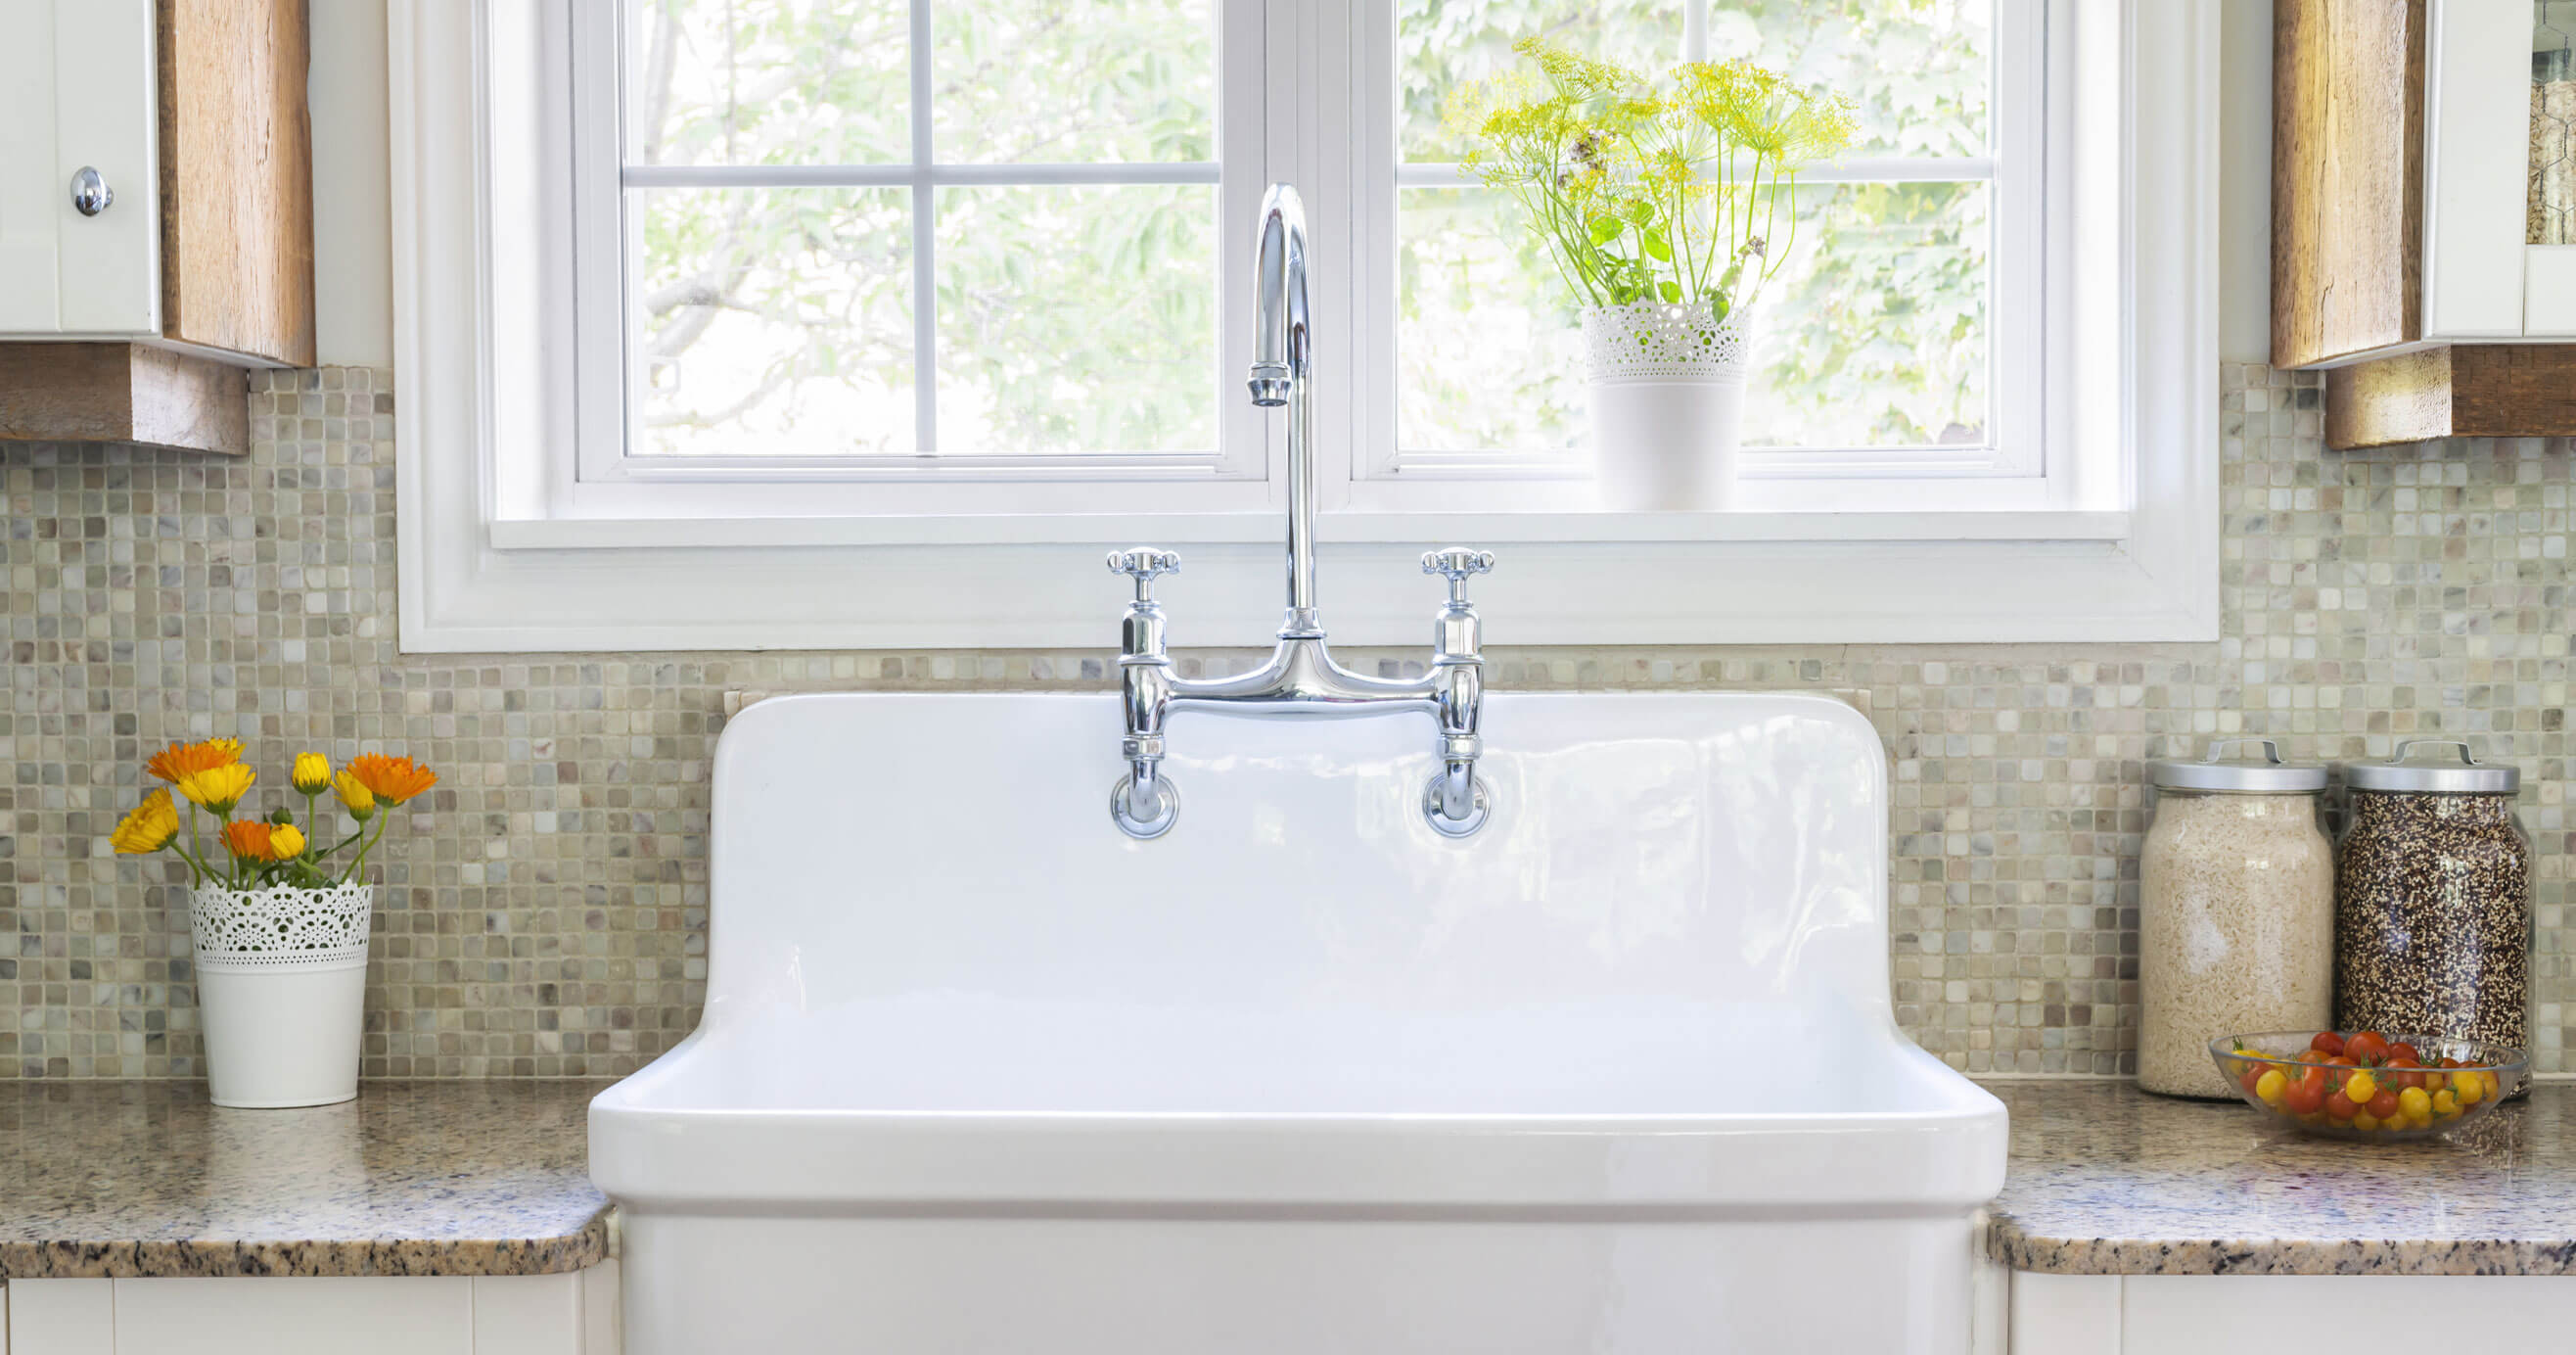 Smell In Shower Drain: Here's How to Fix It | HomeServe